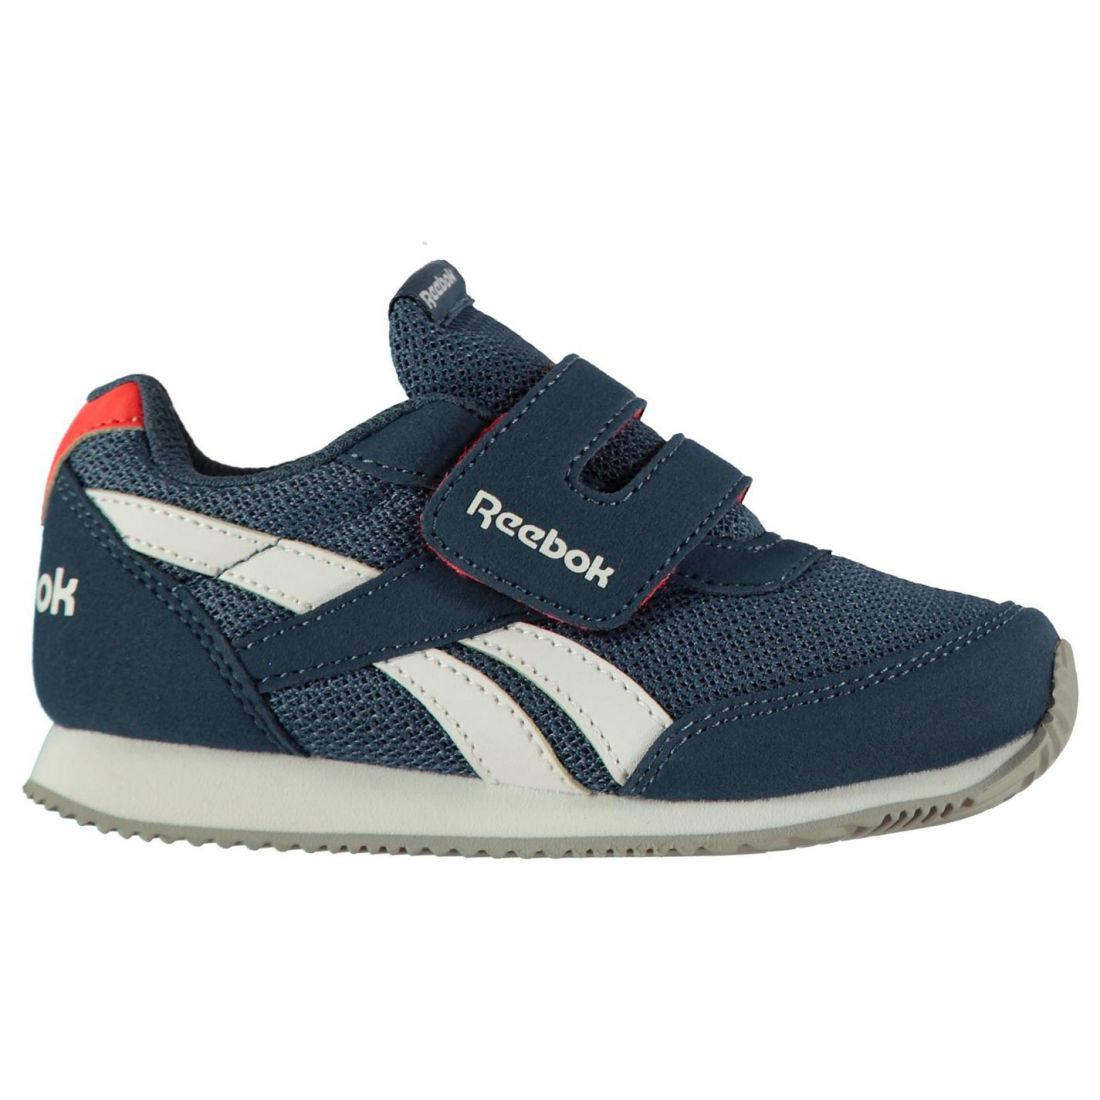 0c4ce49b412 Reebok Boys Classic Jogger RS Baby Trainers Shoes Ortholite Tonal ...